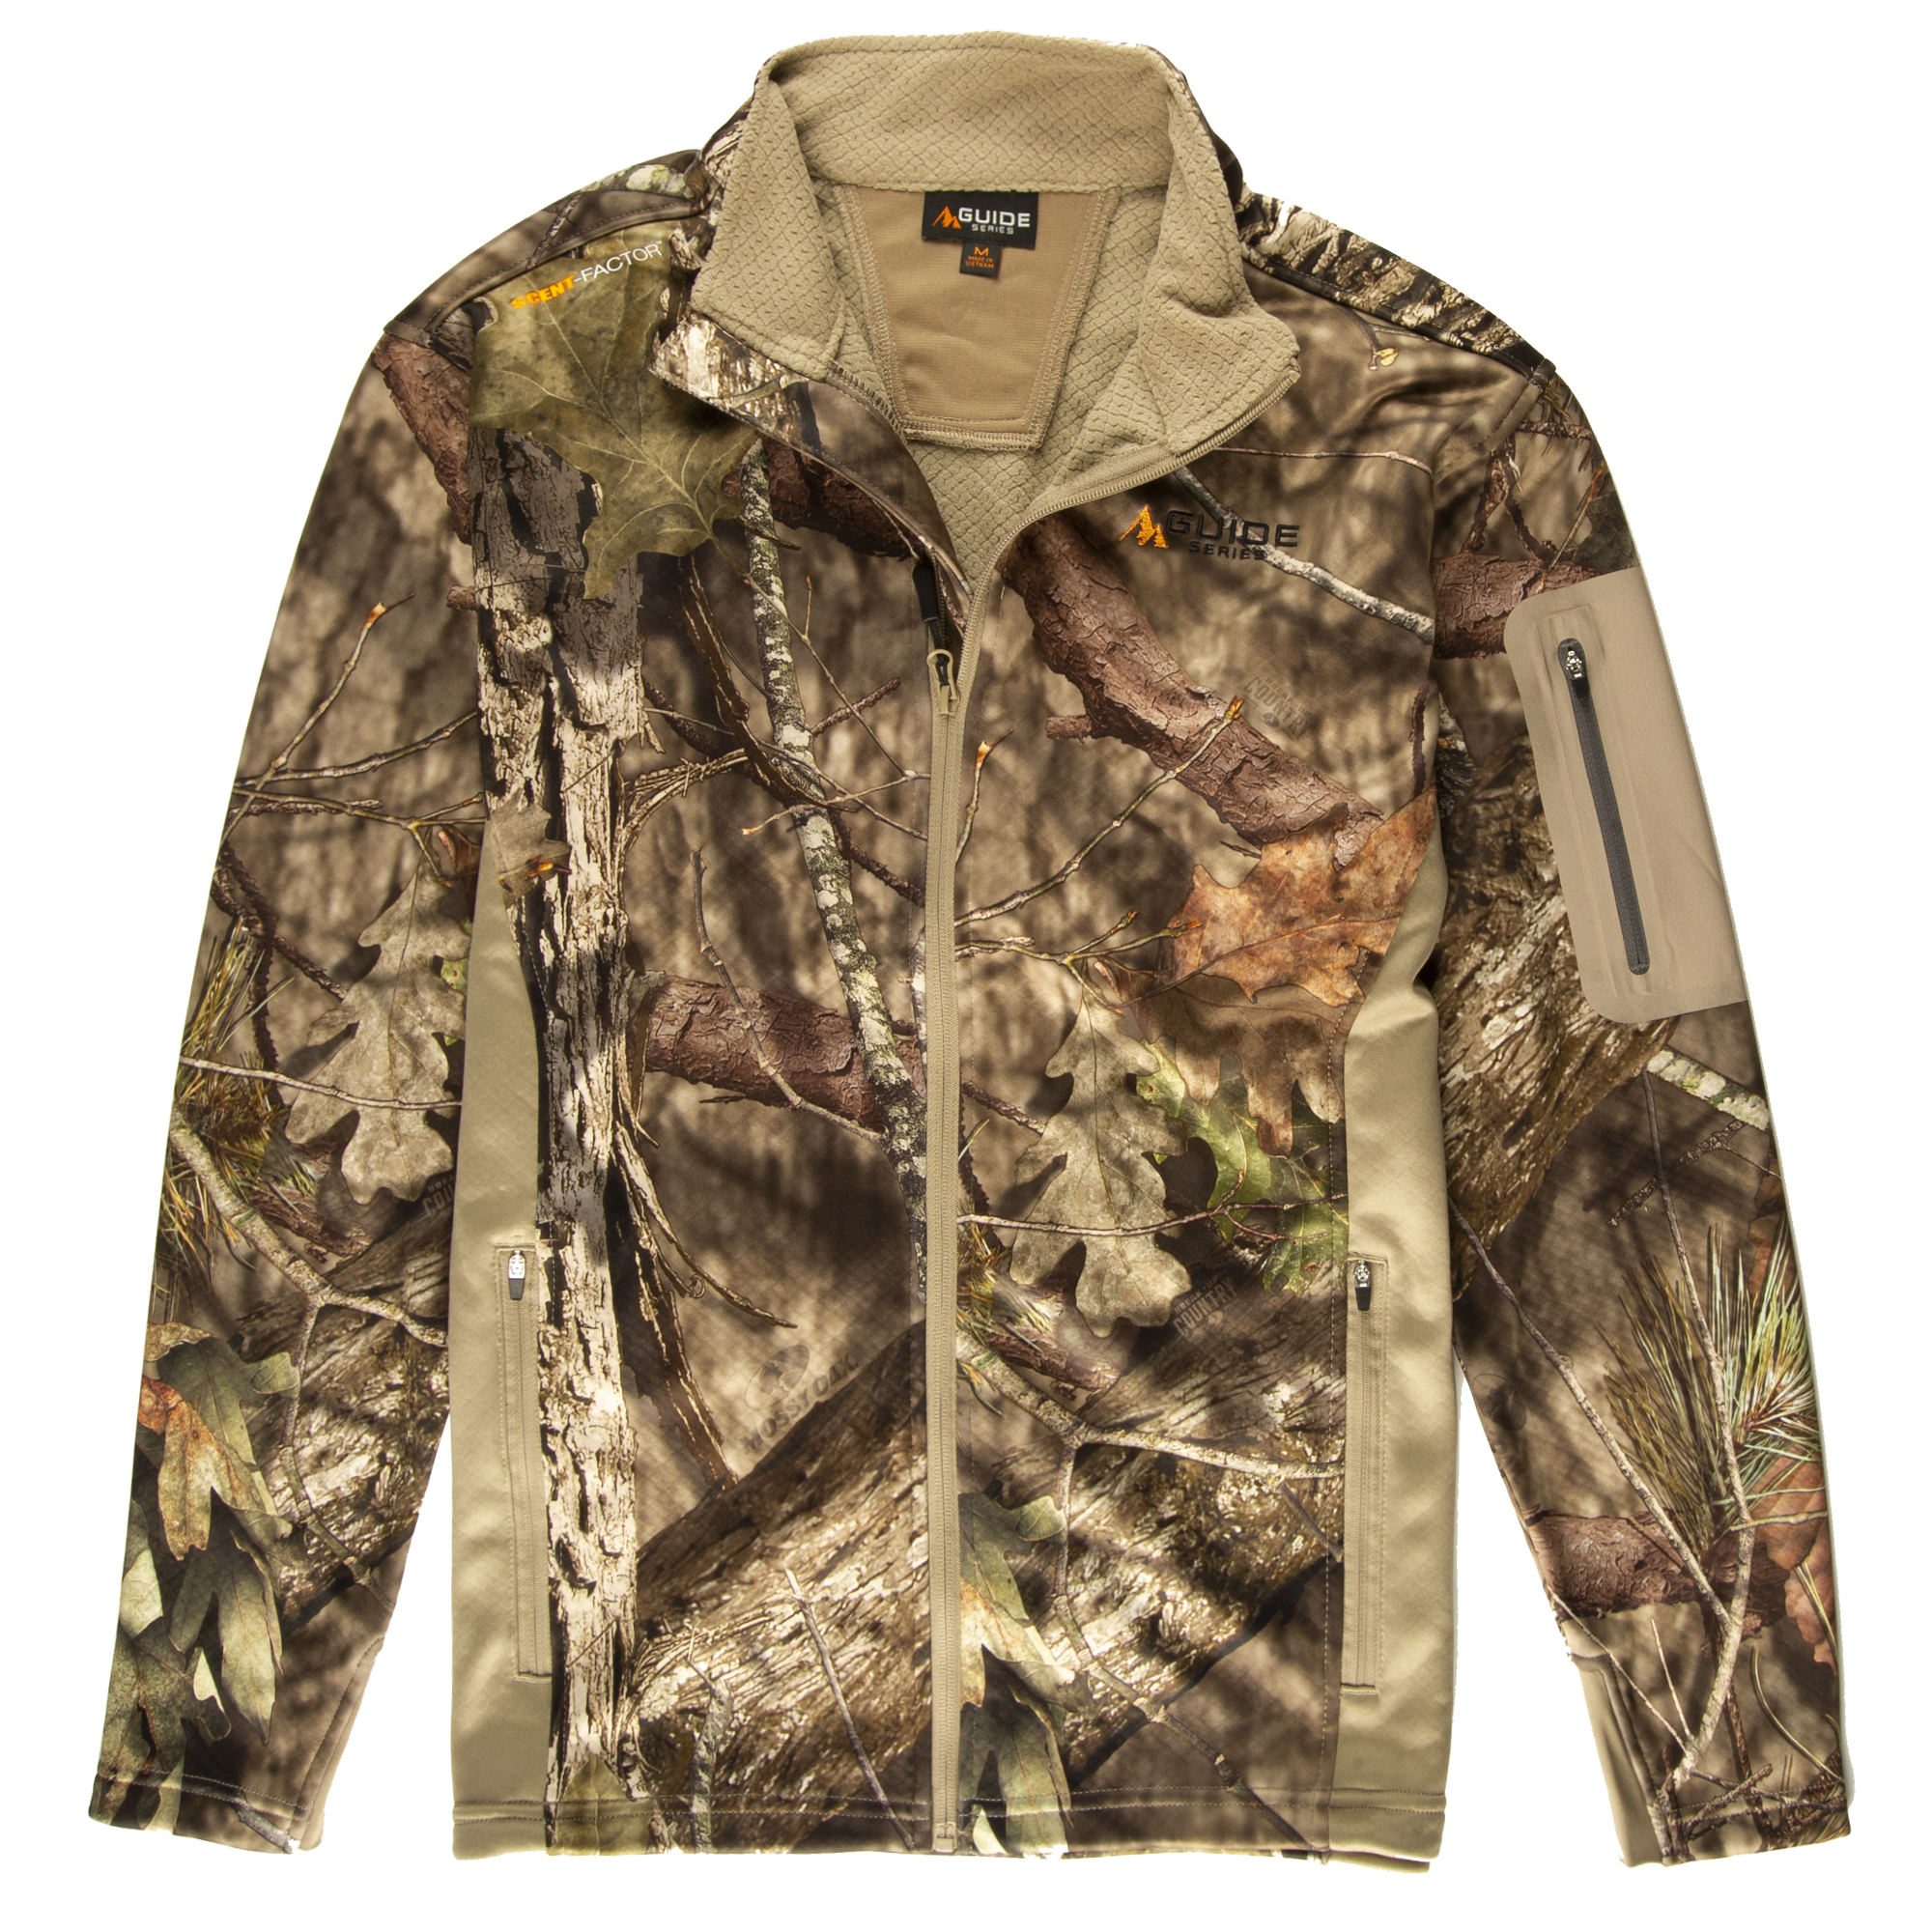 Guide Series Men's Techshell Camo Full-Zip Jacket, Mossy Oak Break-Up Country